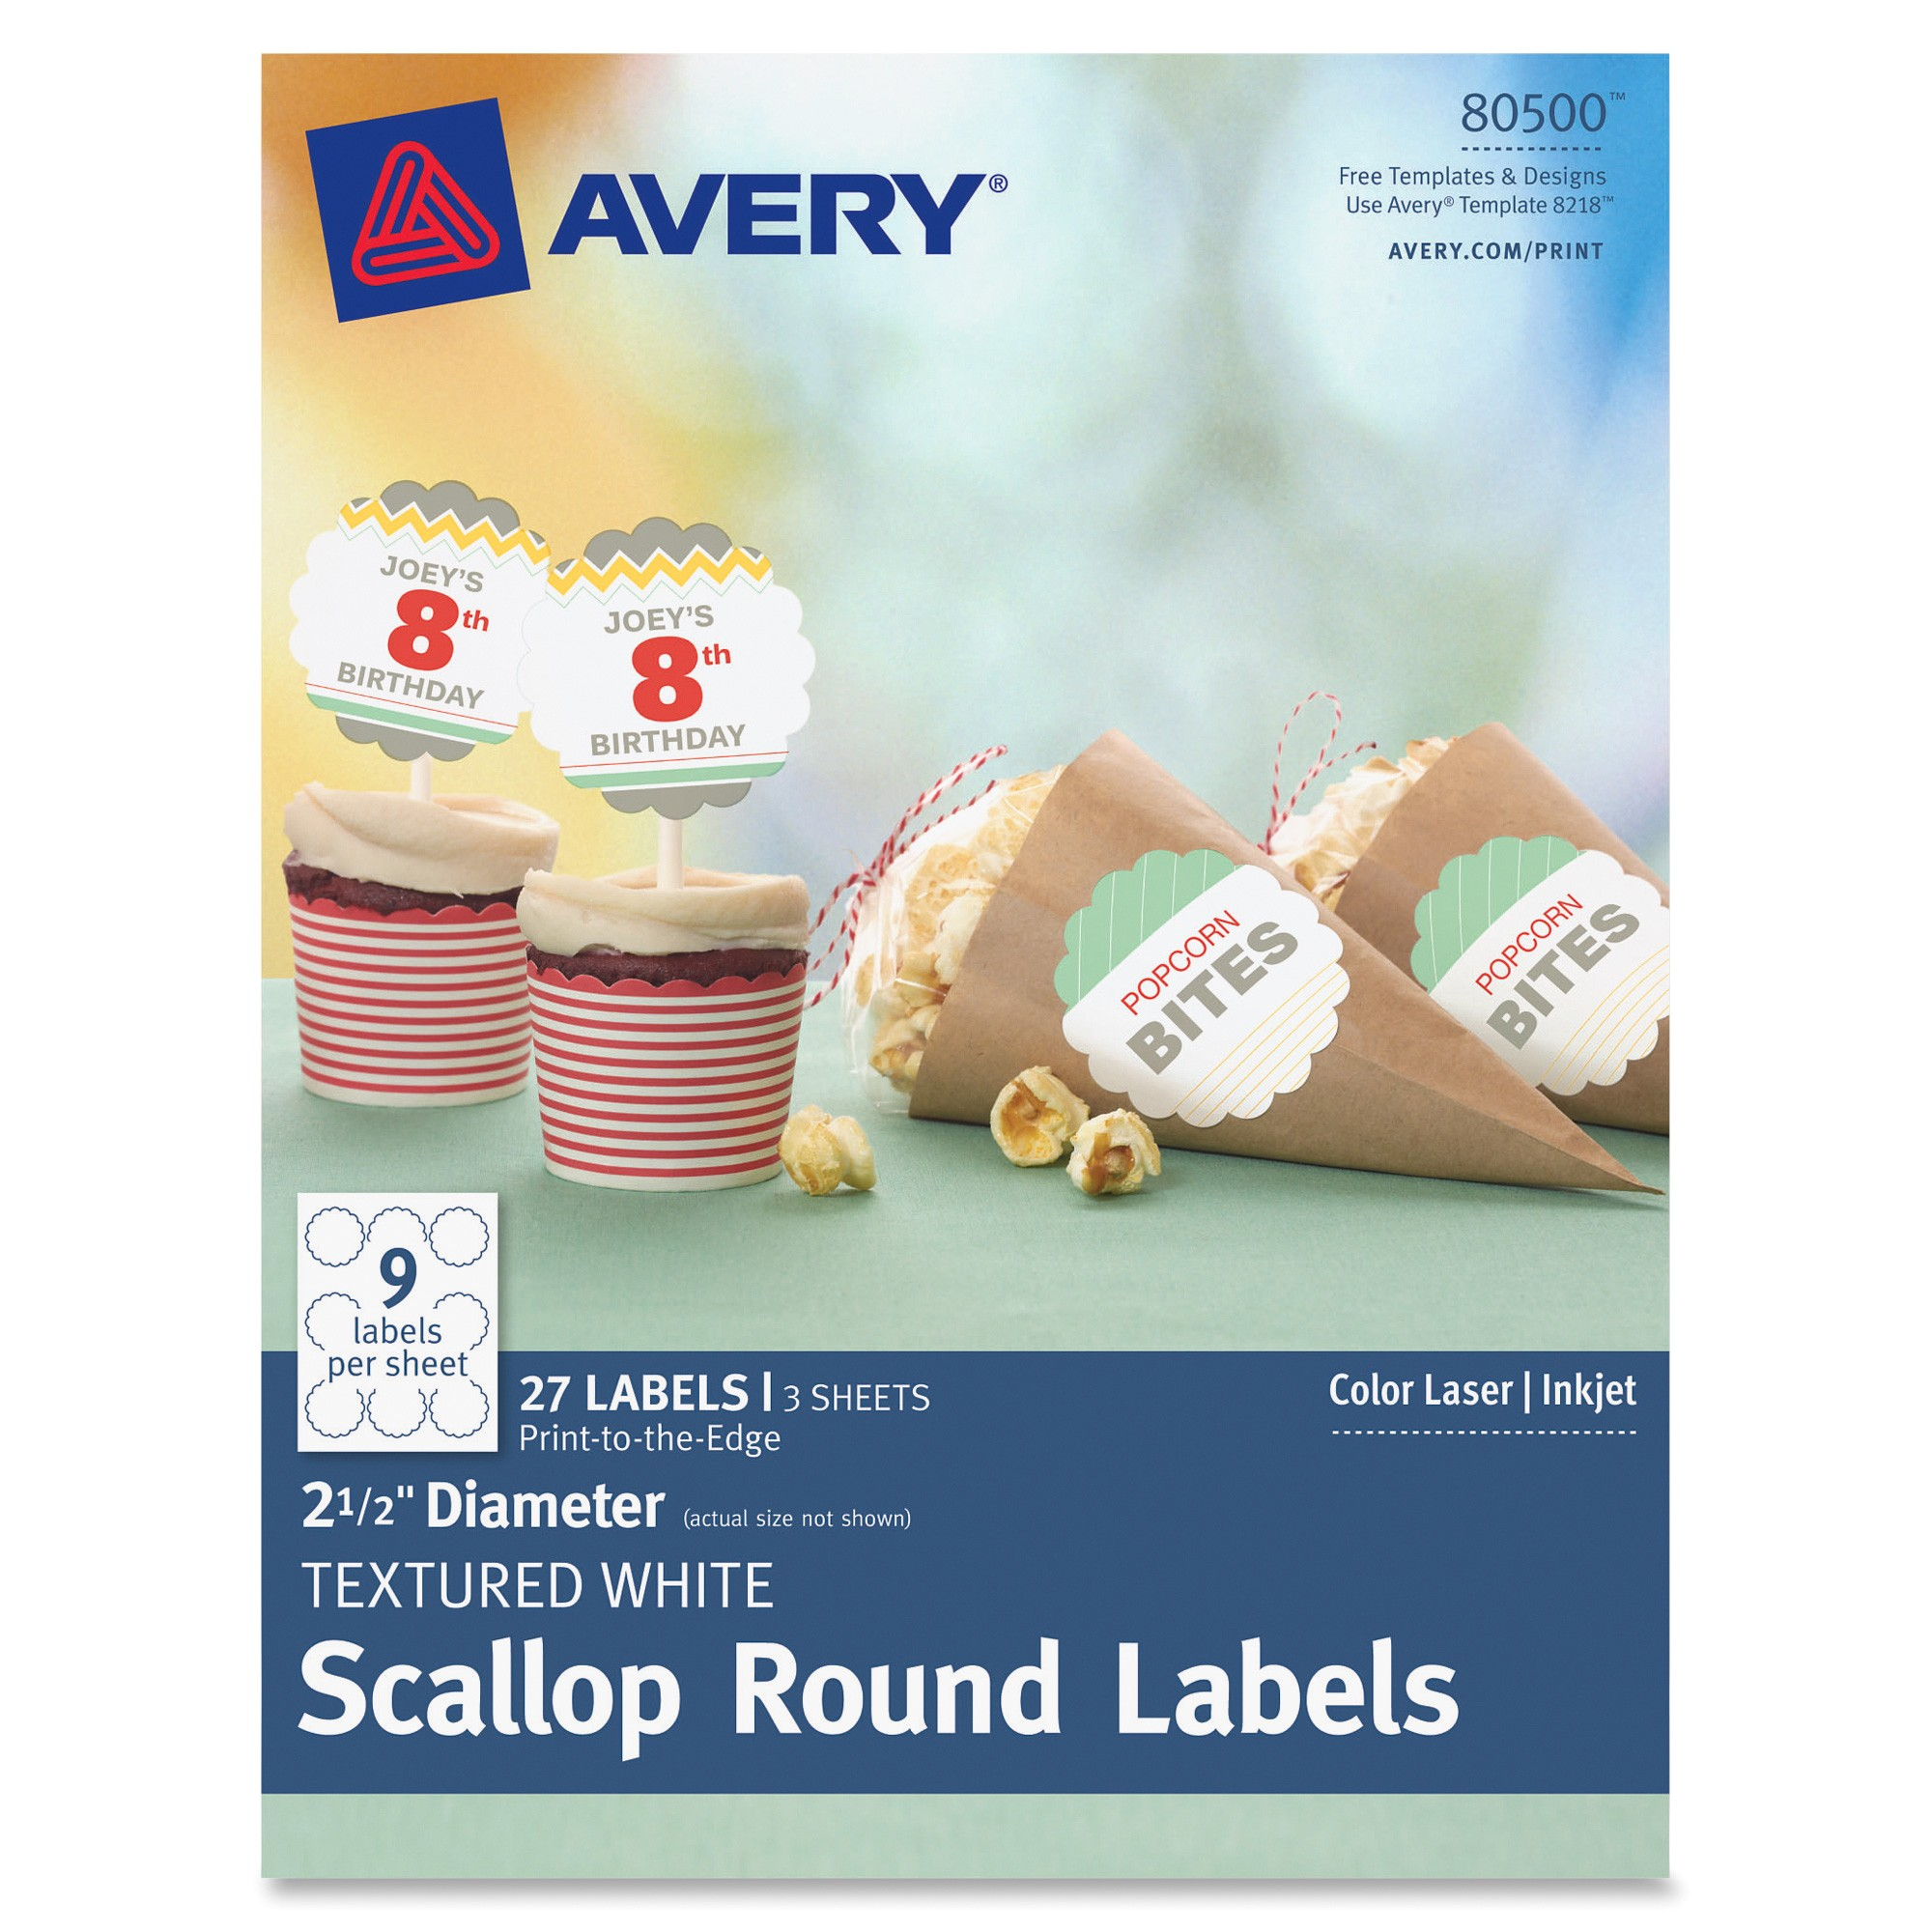 ave80500 avery textured white scallop round labels 80500 21 2 diameter pack of 27